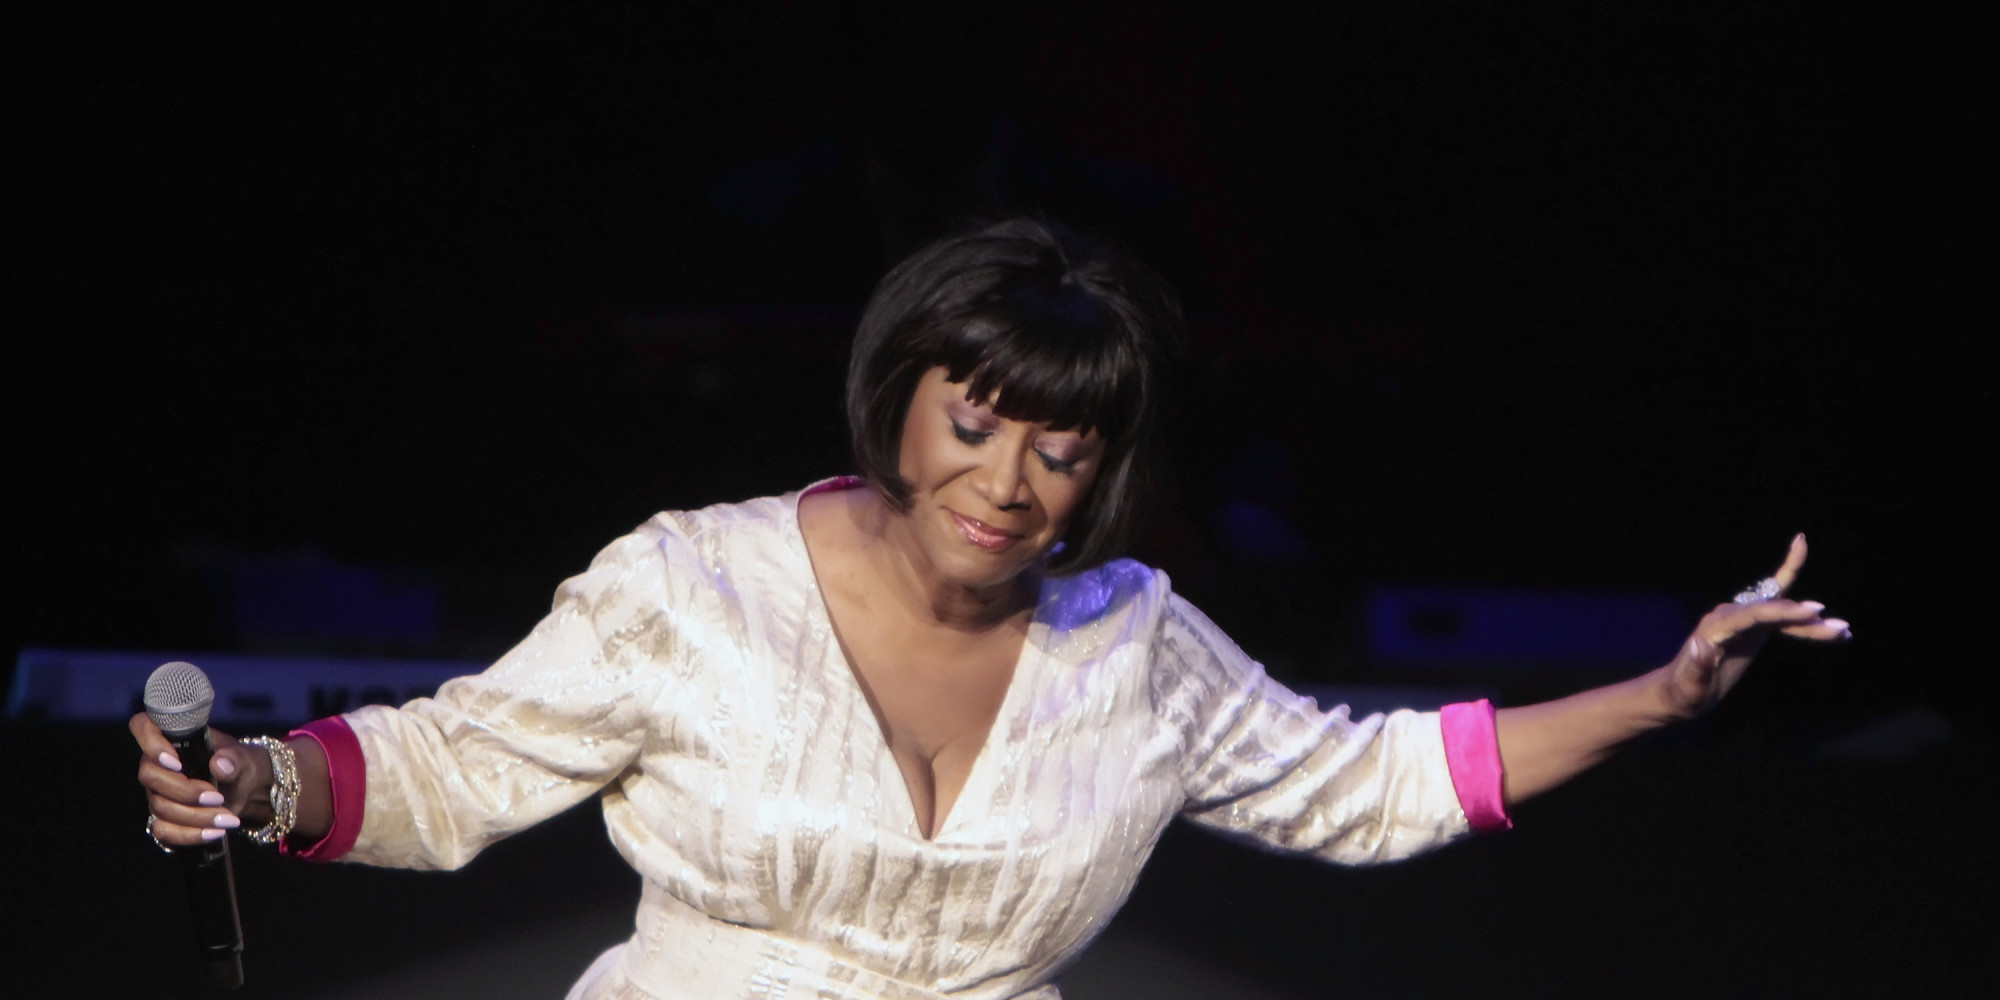 patti labelle slams today u0026 39 s divas as  u0026 39 little heifers u0026 39